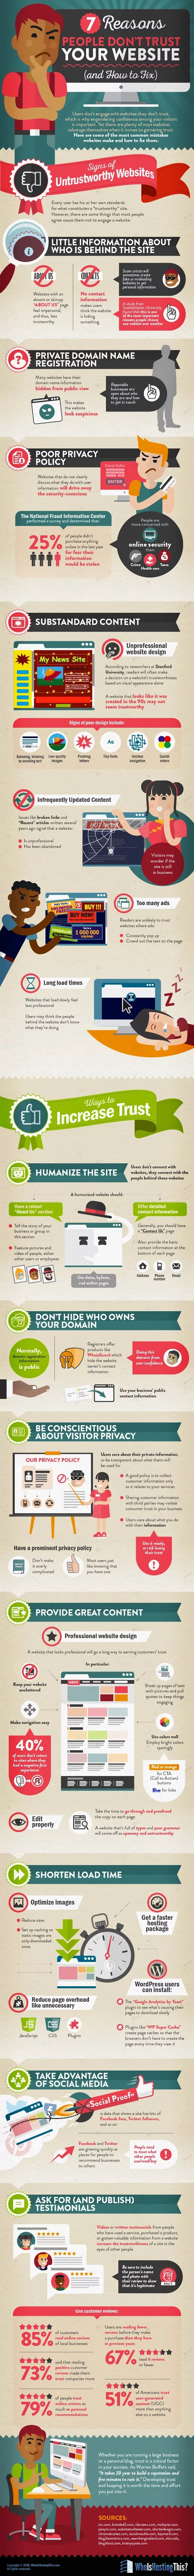 7 Reasons People Don't Trust Your Website and How to Fix #infographic